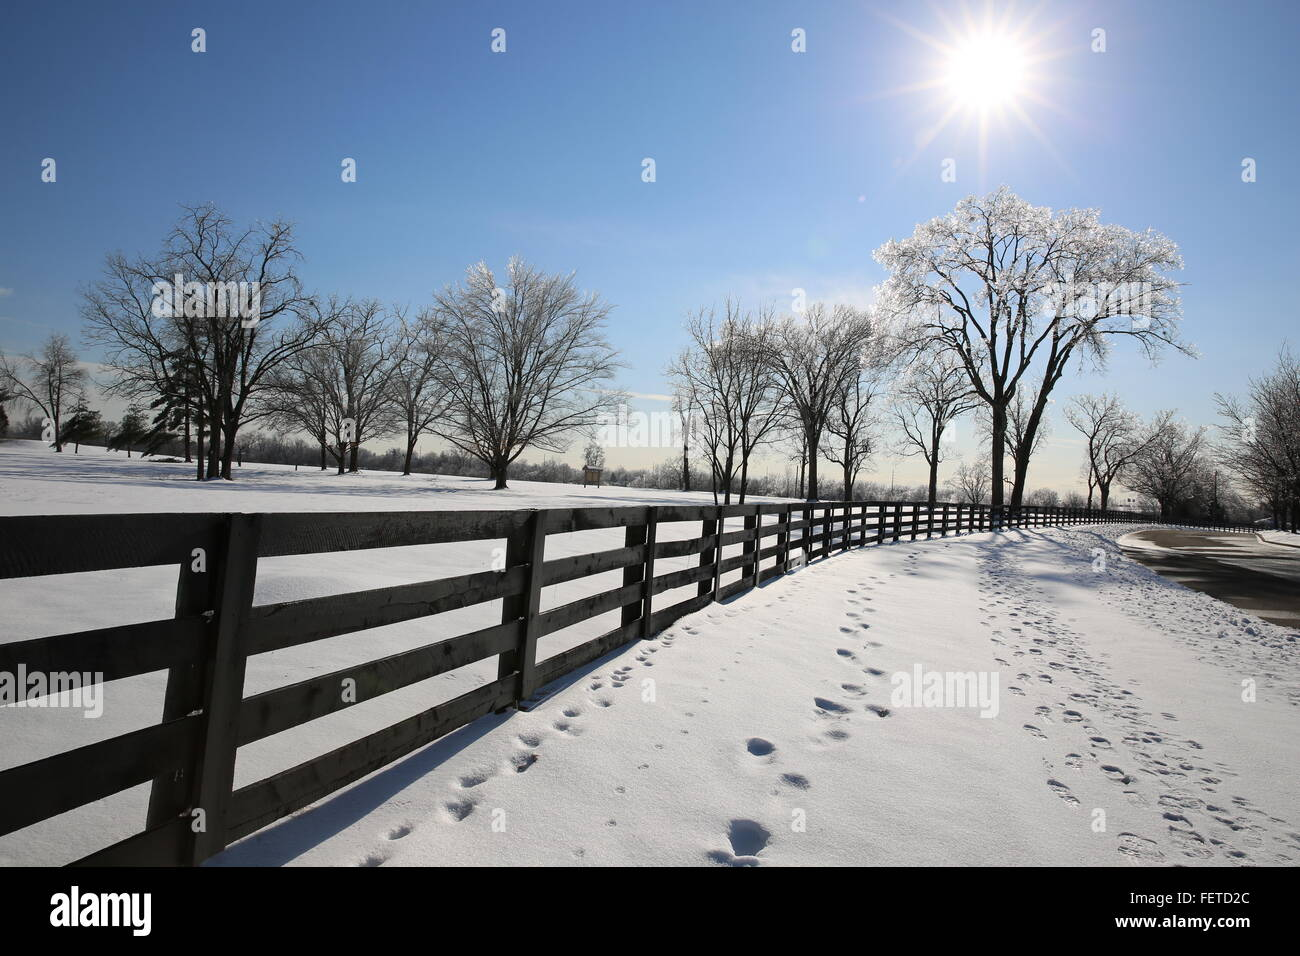 sunny day on a cold winter day glimmering on the ice covered trees - Stock Image